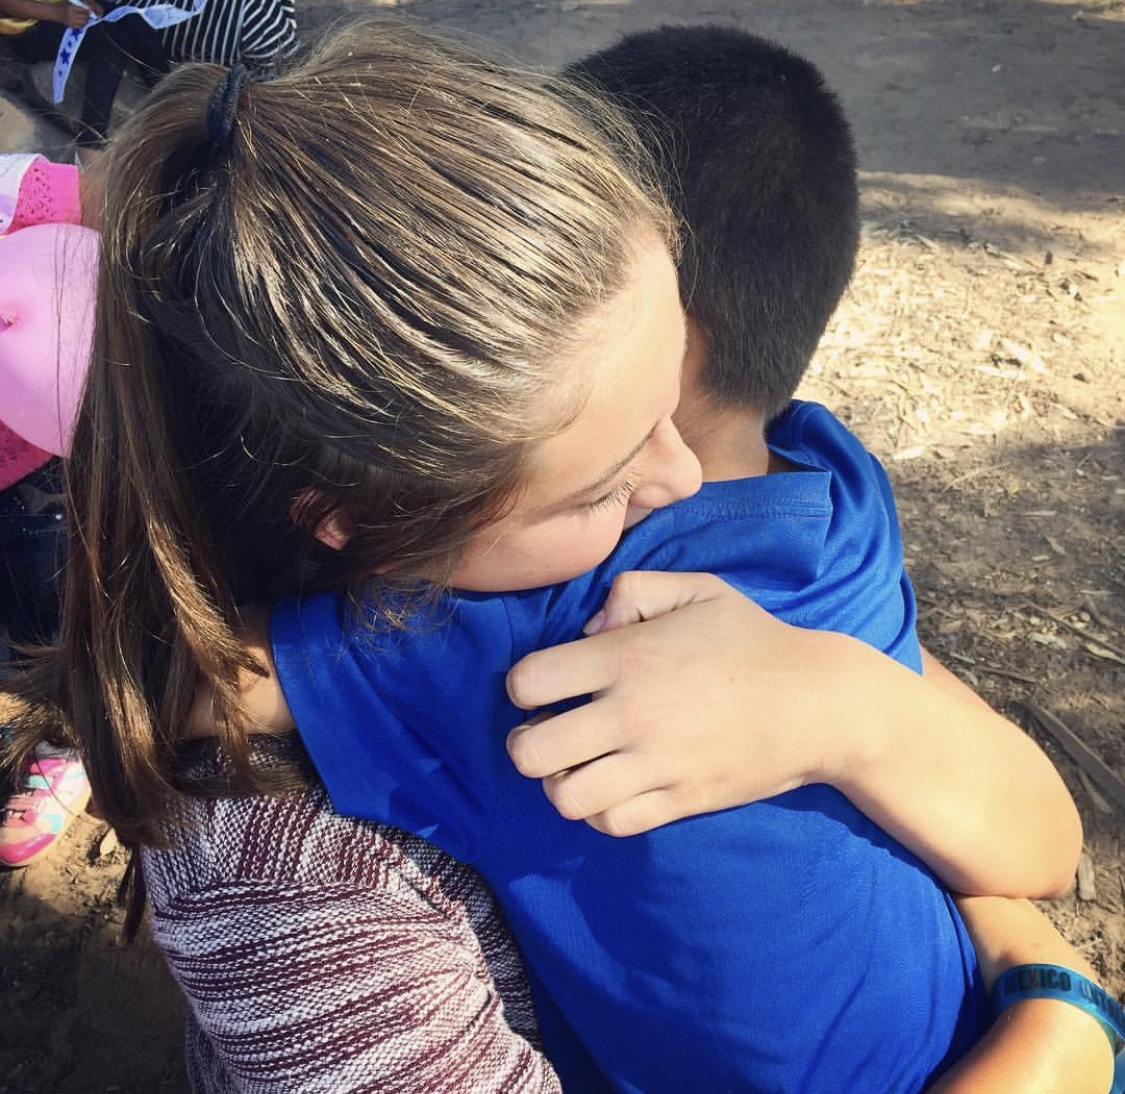 A student hugs a child while volunteering at Mexicali. The Mexicali trip through Bayside is a popular volunteer opportunity for Granite Bay High School students. Many students volunteer through Bayside Church for service hours.